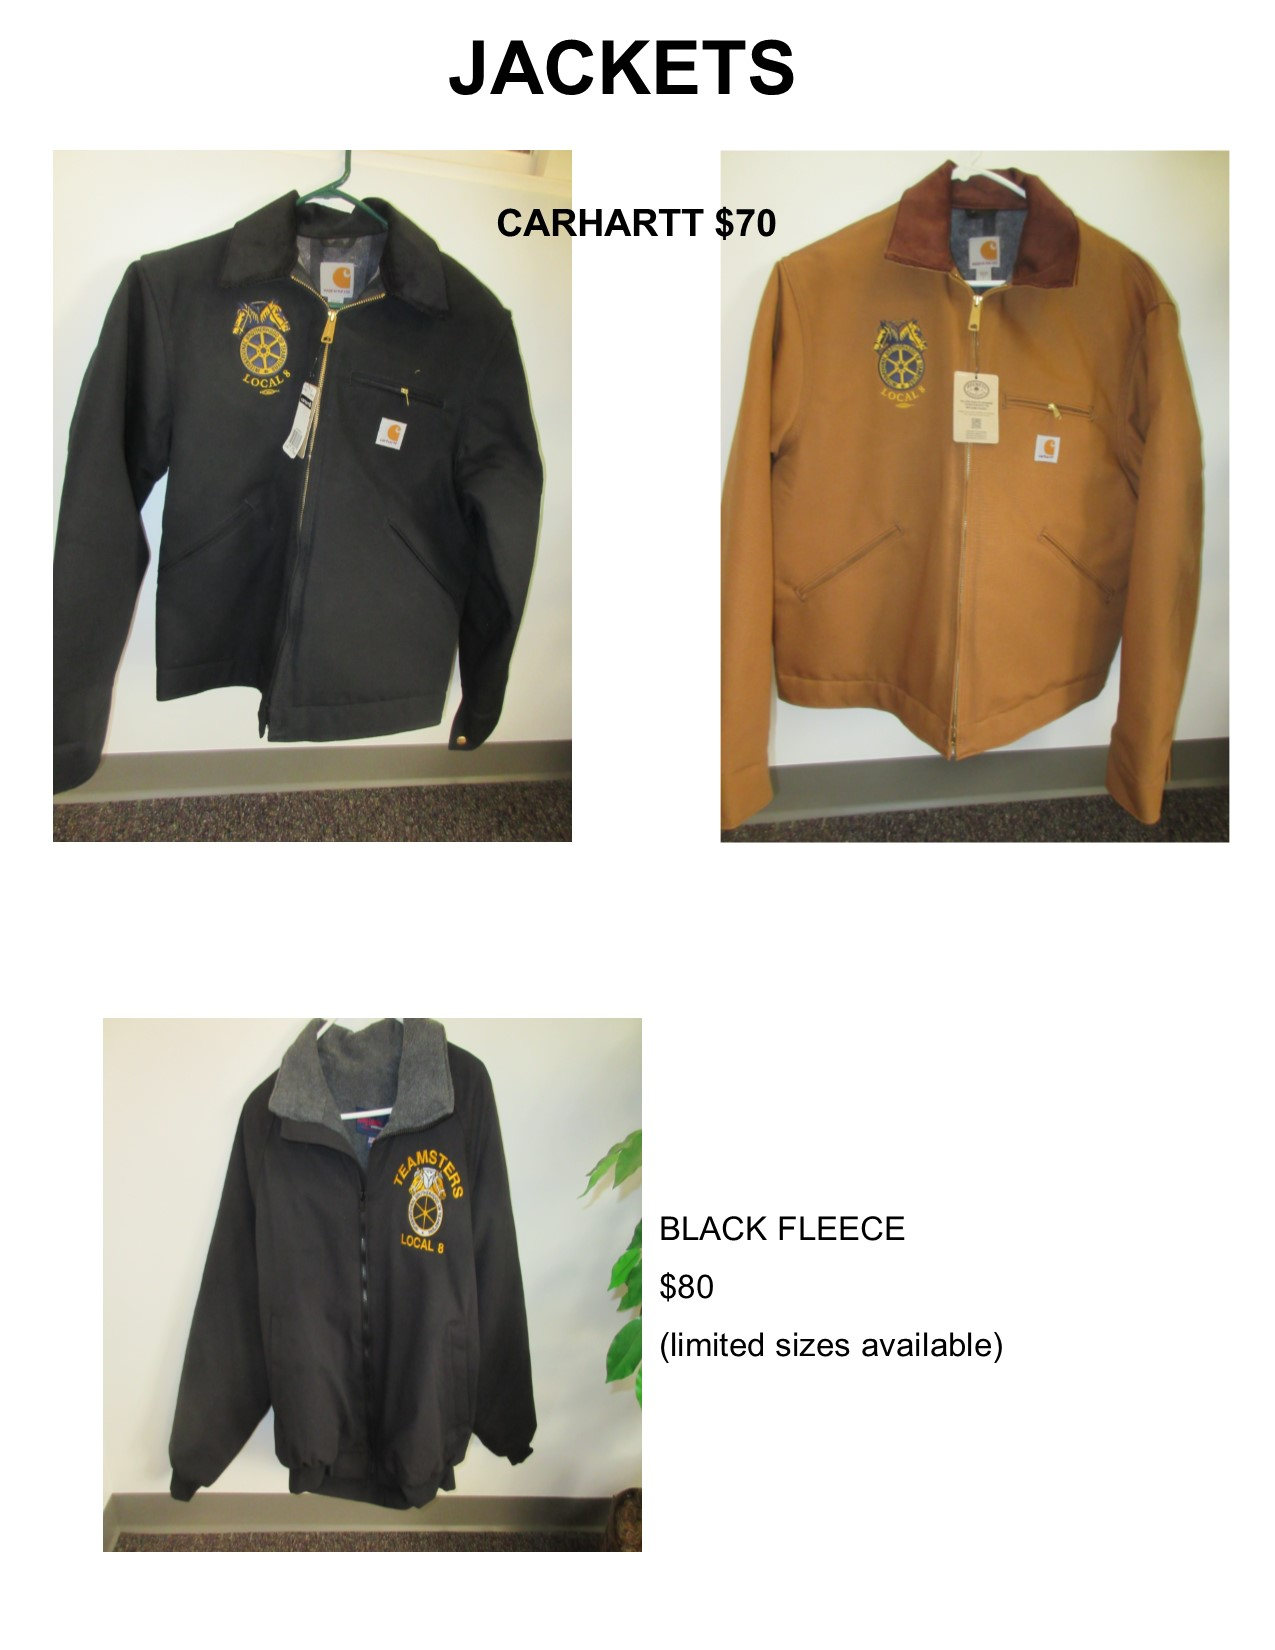 TEAMSTER ITEMS FOR SALE (Cash or check, no credit cards accepted)